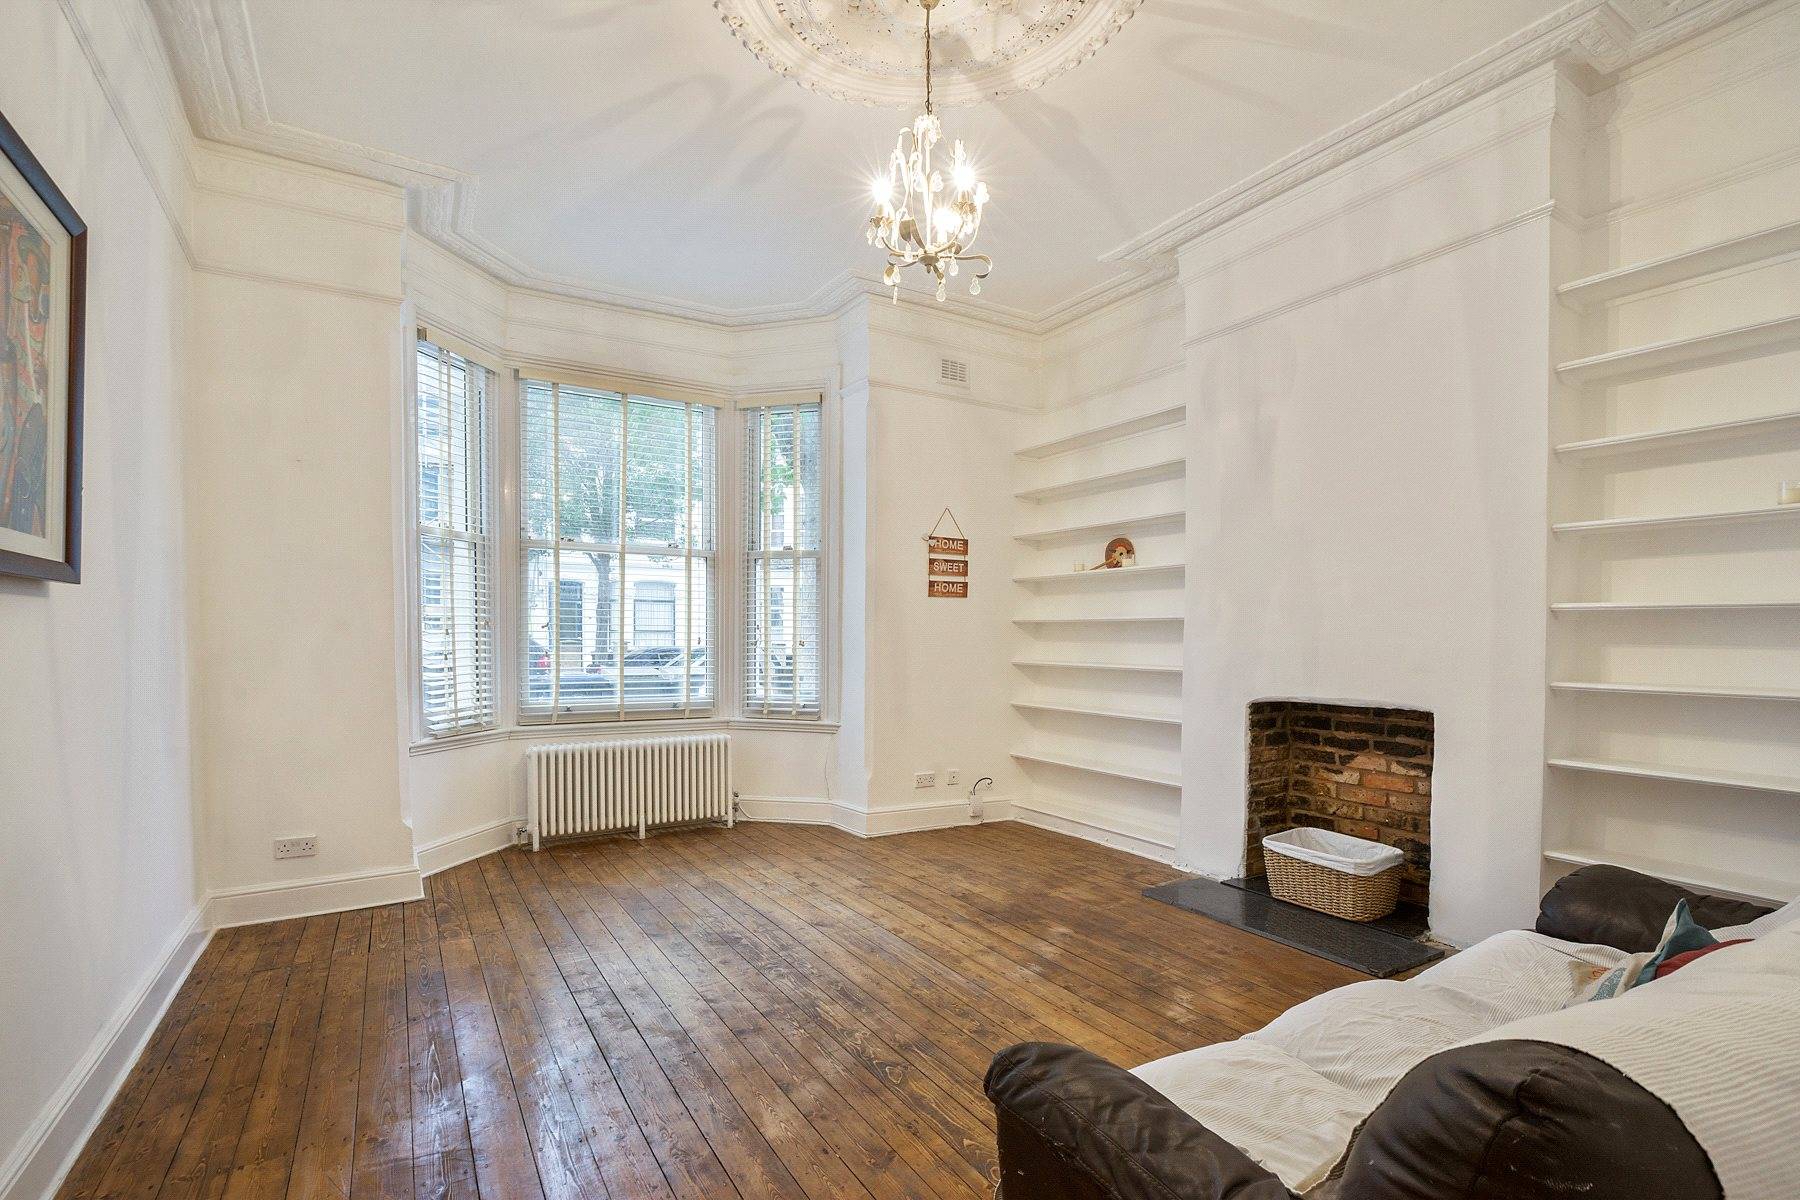 2 Bedrooms Flat for sale in Burton Road, Brondesbury, London, NW6